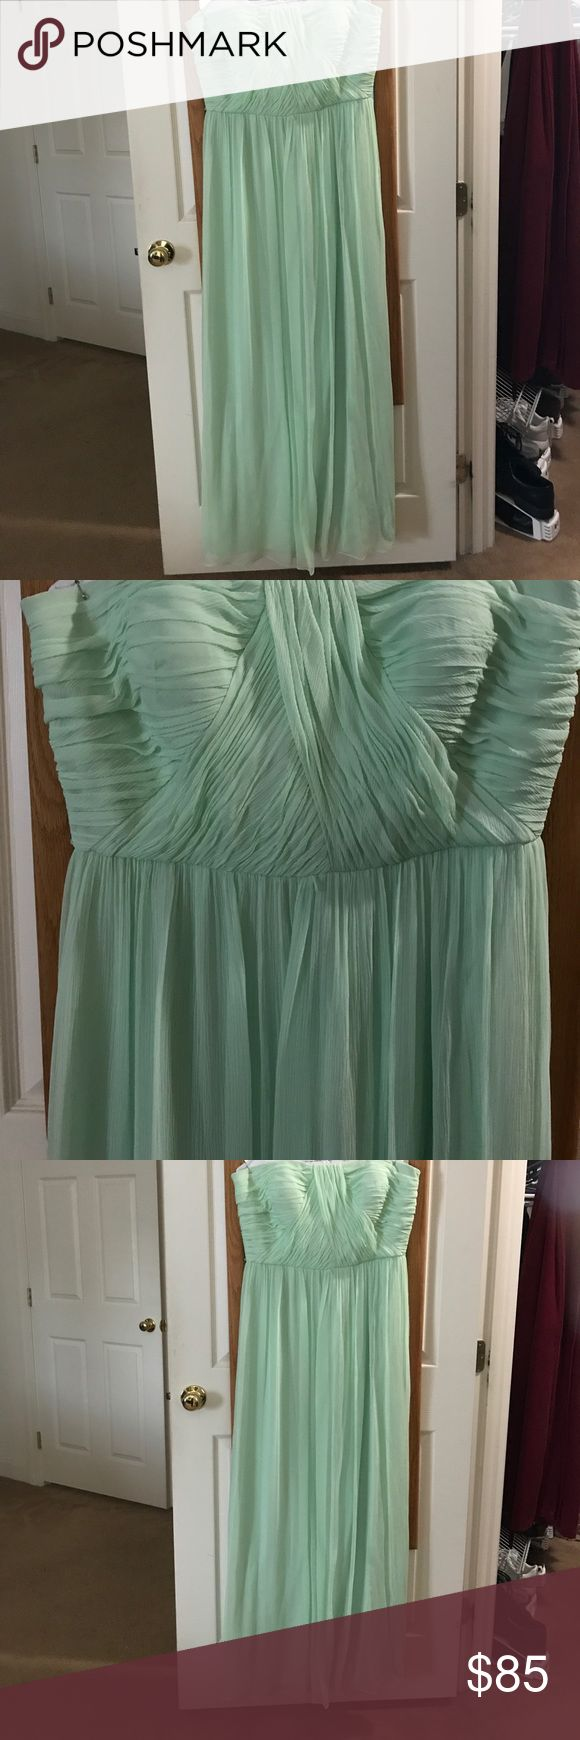 Strapless Mint Green Donna Morgan Gown Mint Green Sheer Strapless Donna Morgan Gown - Size 16 - Worn Once - 1 small nick as shown in photo Donna Morgan Dresses Strapless